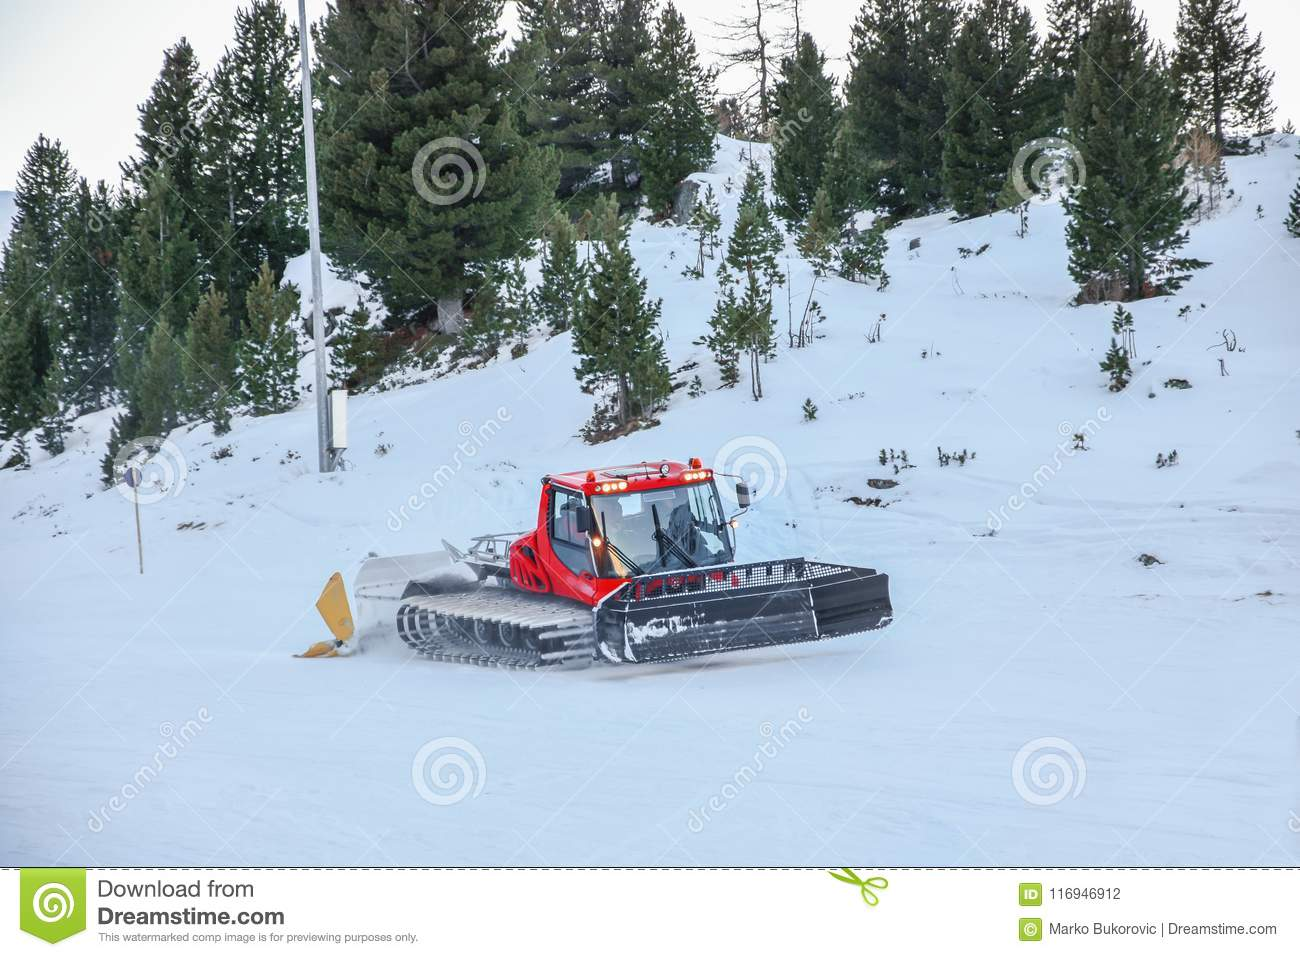 Red Pisten Bully Cleaning Snow On Winter Mountain With Pine Tree